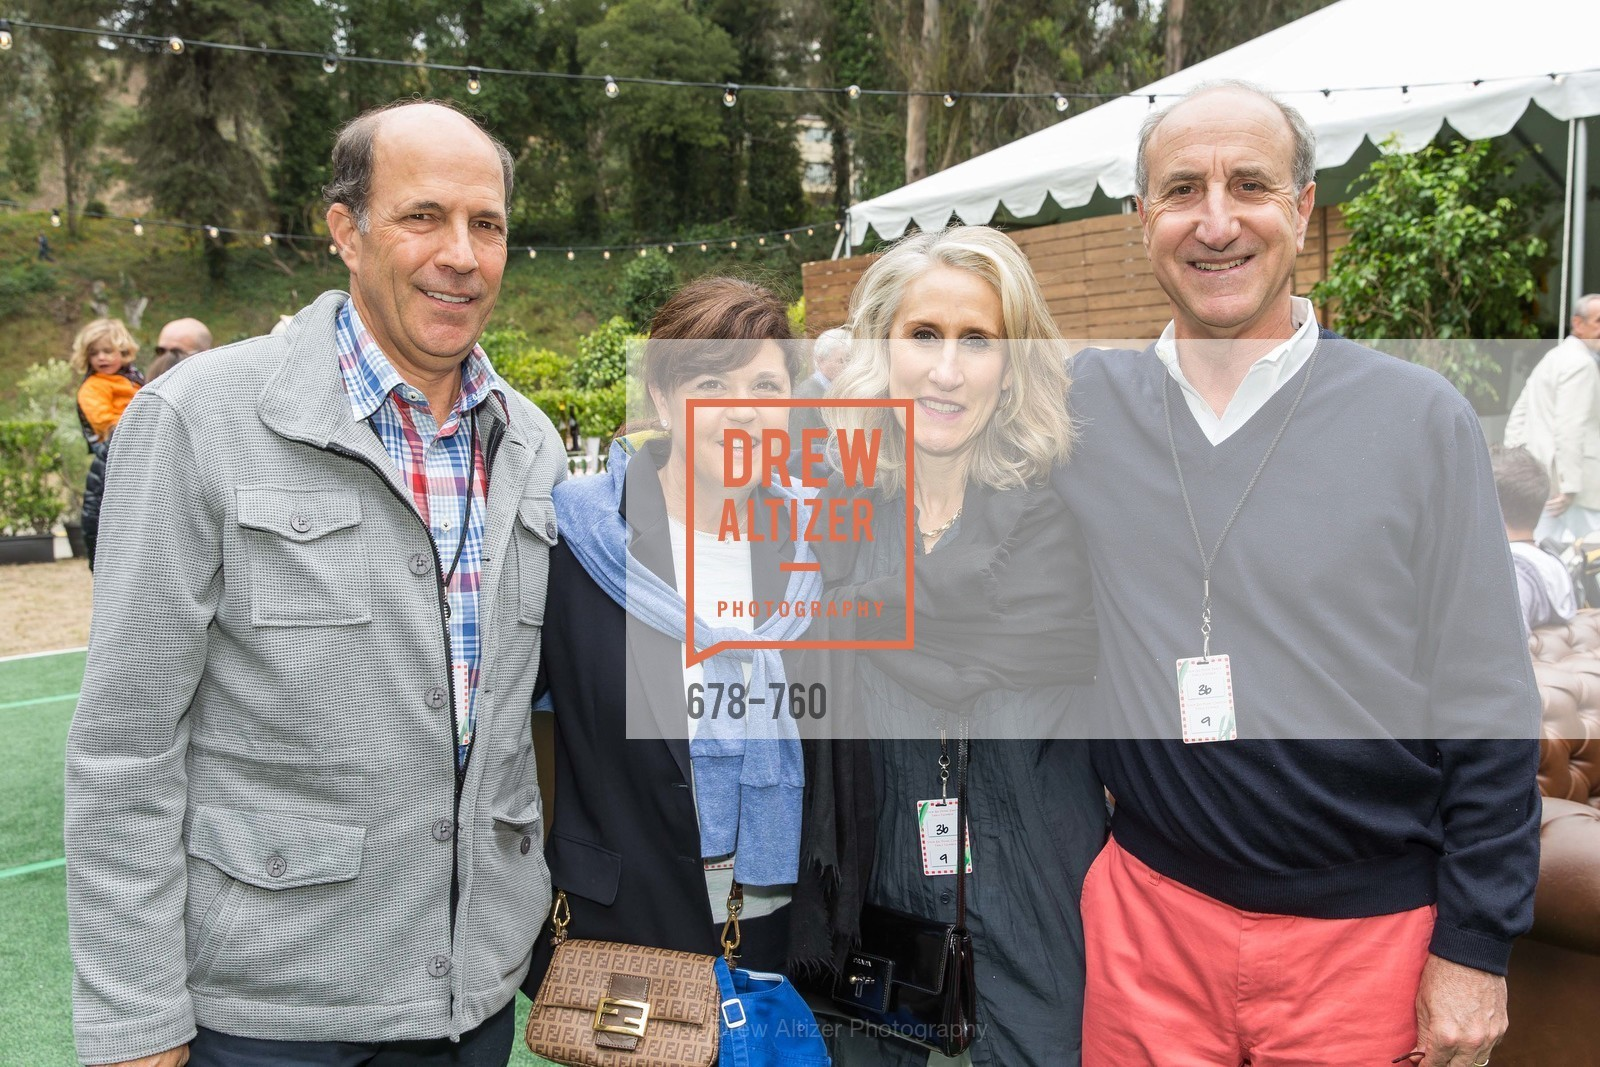 John Roos, Susie Roos, Jamie Meyers, Mark Meyers, The Big Picnic! A Benefit & Concert for STERN GROVE FESTIVAL, US, June 14th, 2015,Drew Altizer, Drew Altizer Photography, full-service agency, private events, San Francisco photographer, photographer california